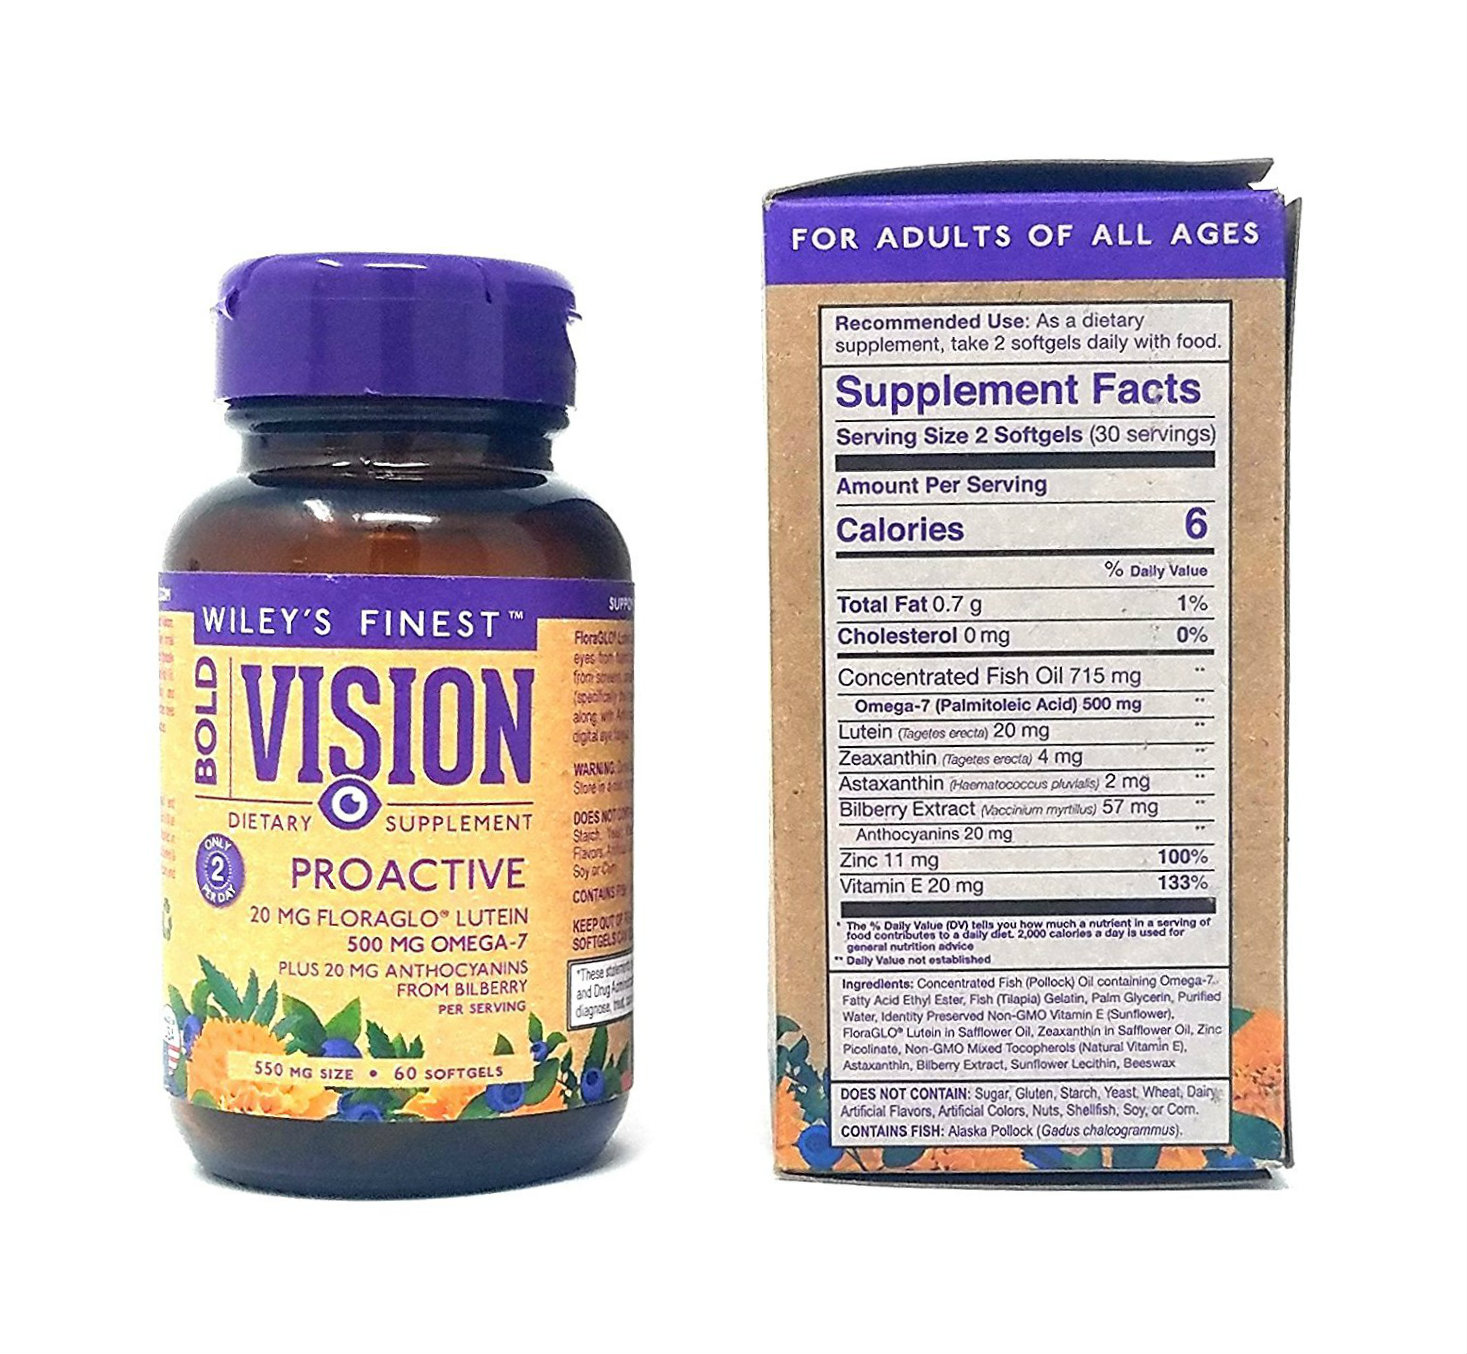 Wiley's Finest Bold Vision Proactive 550 mg 60 SG